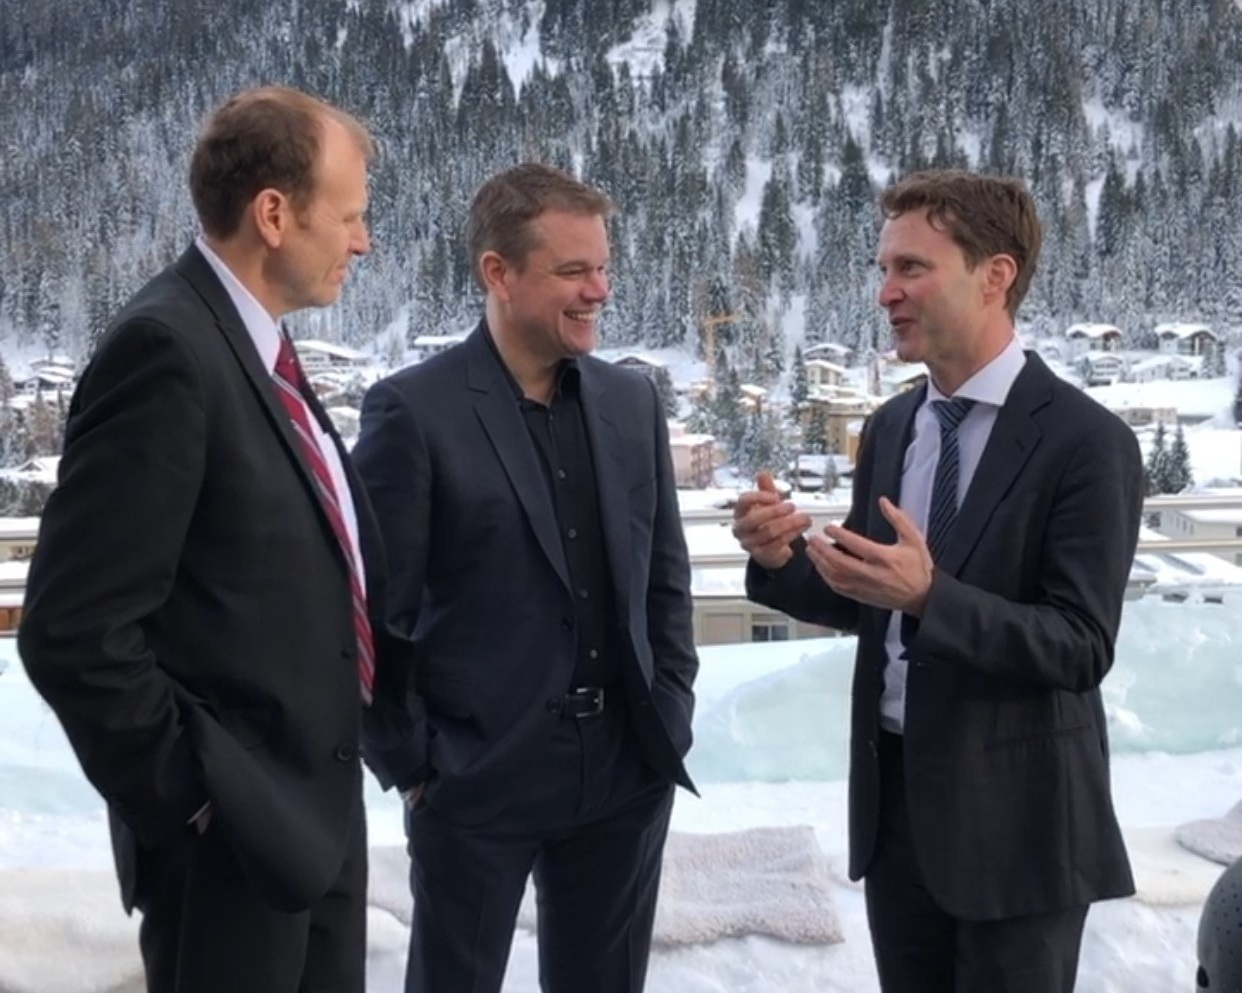 Gary White and Matt Damon of Water.Org with Paul O'Callaghan, CEO BlueTech Research filming in Davos Switzerland